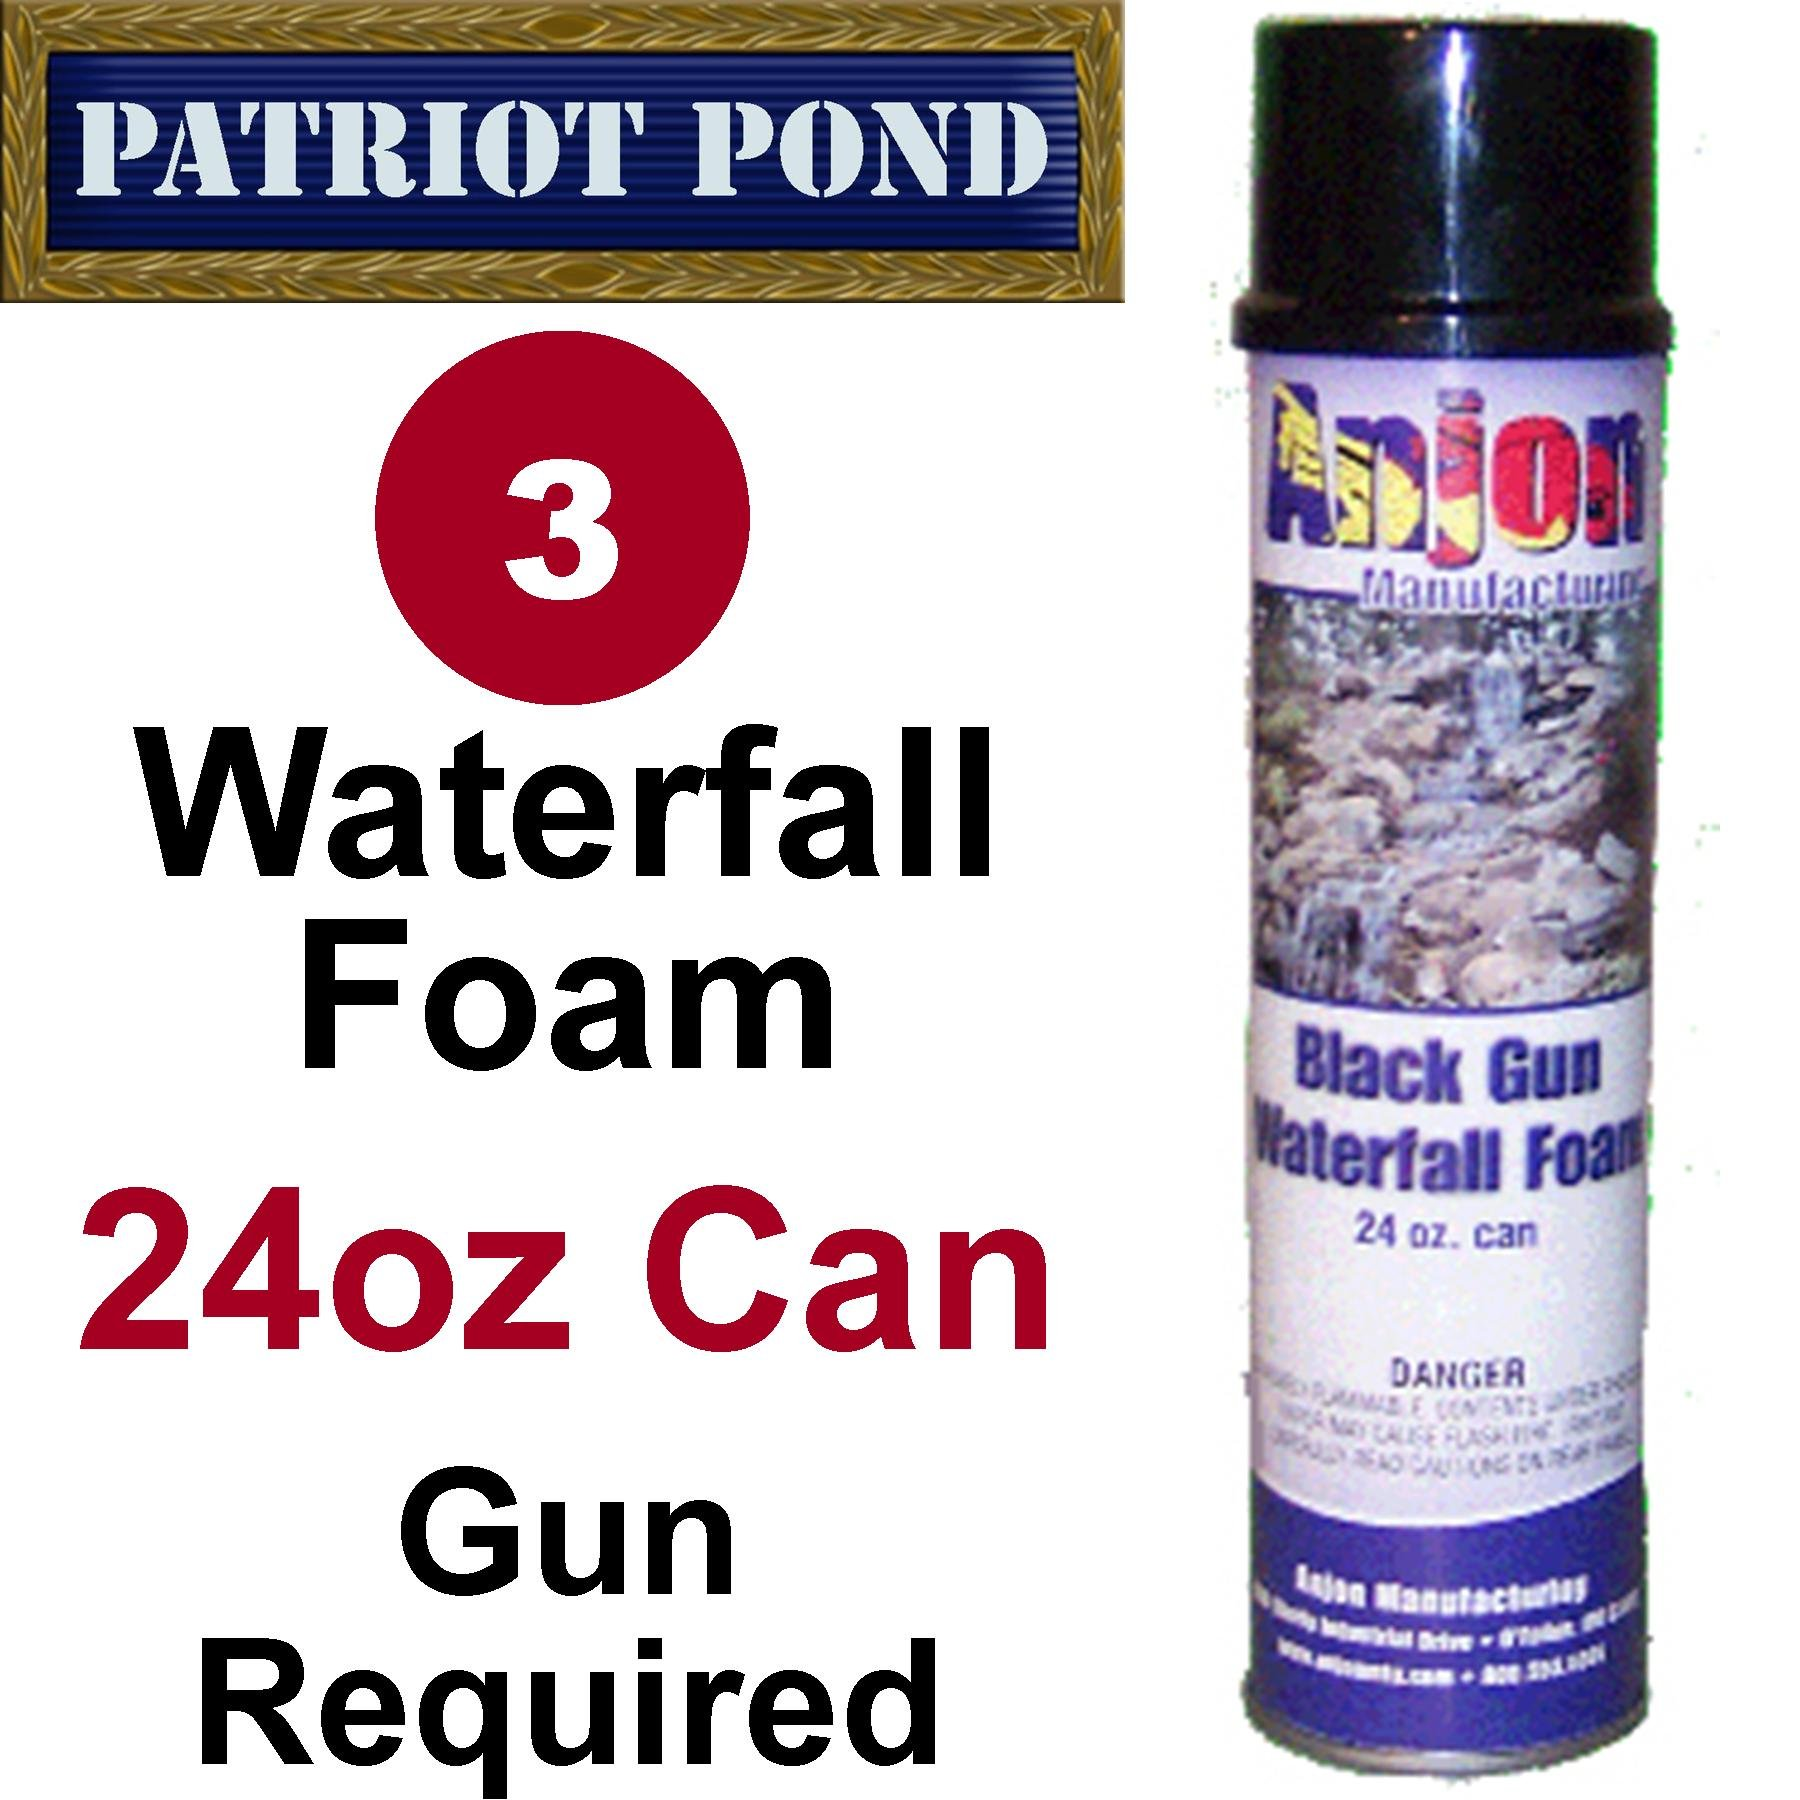 Patriot 24oz Can Waterfall Foam (3) Pack Special for Waterfall Foam Guns by Patriot